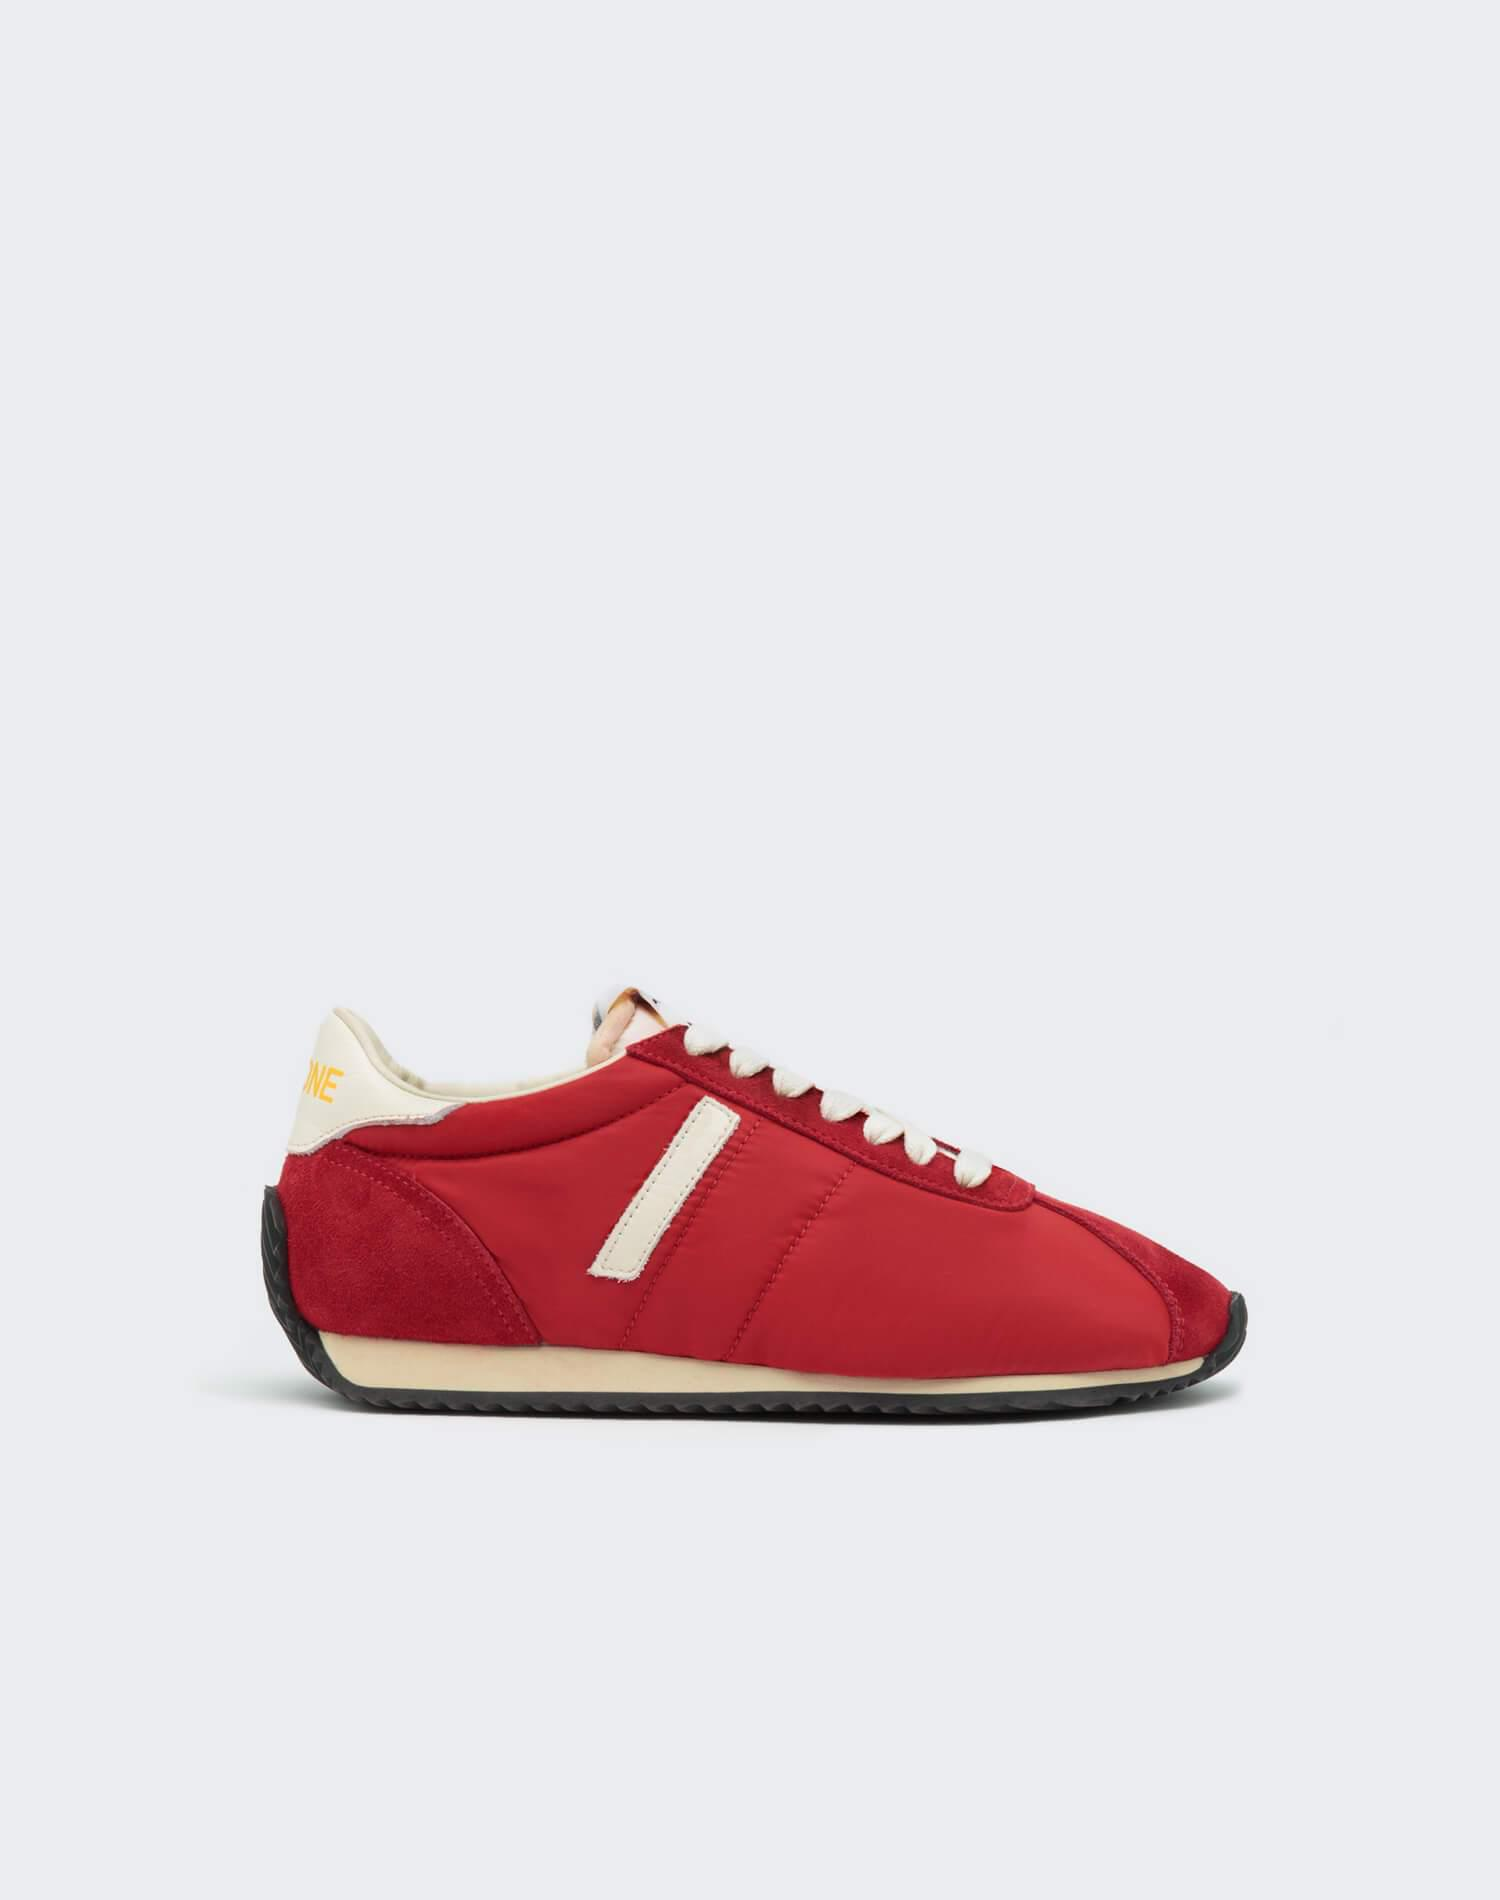 70s Runner Shoe - Red and White